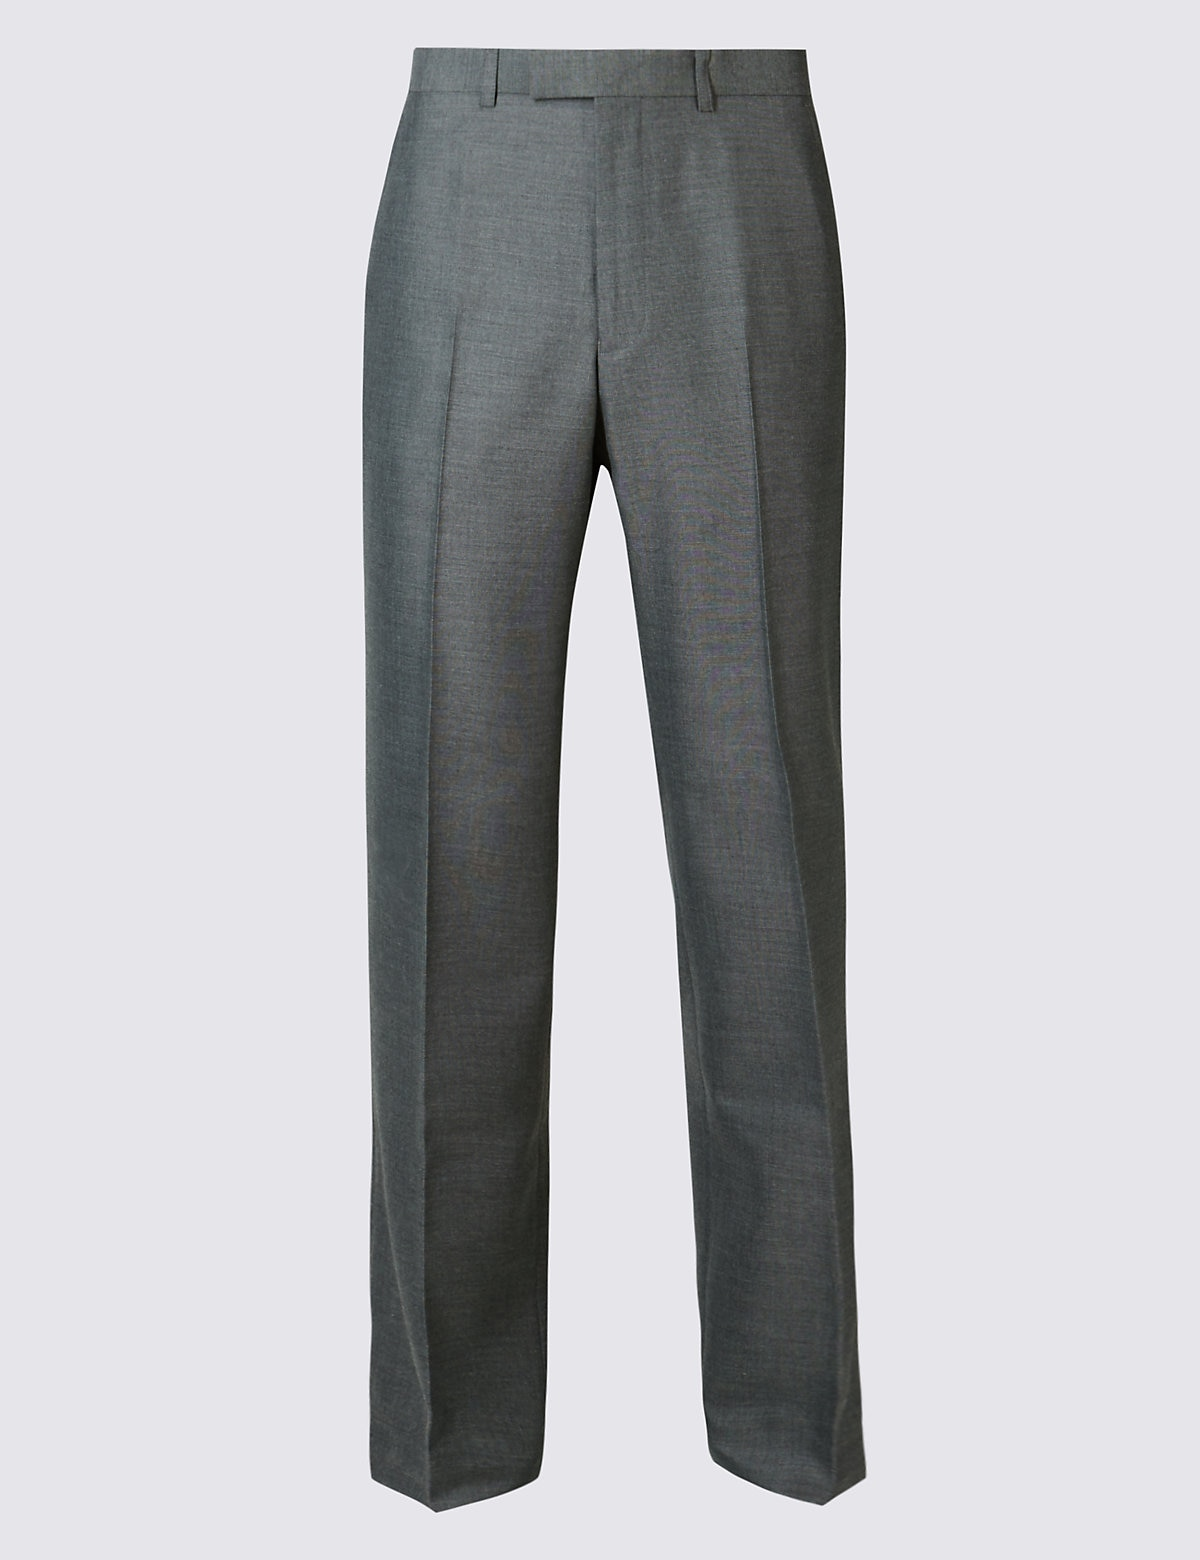 Marks & Spencer Grey Regular Fit Trousers